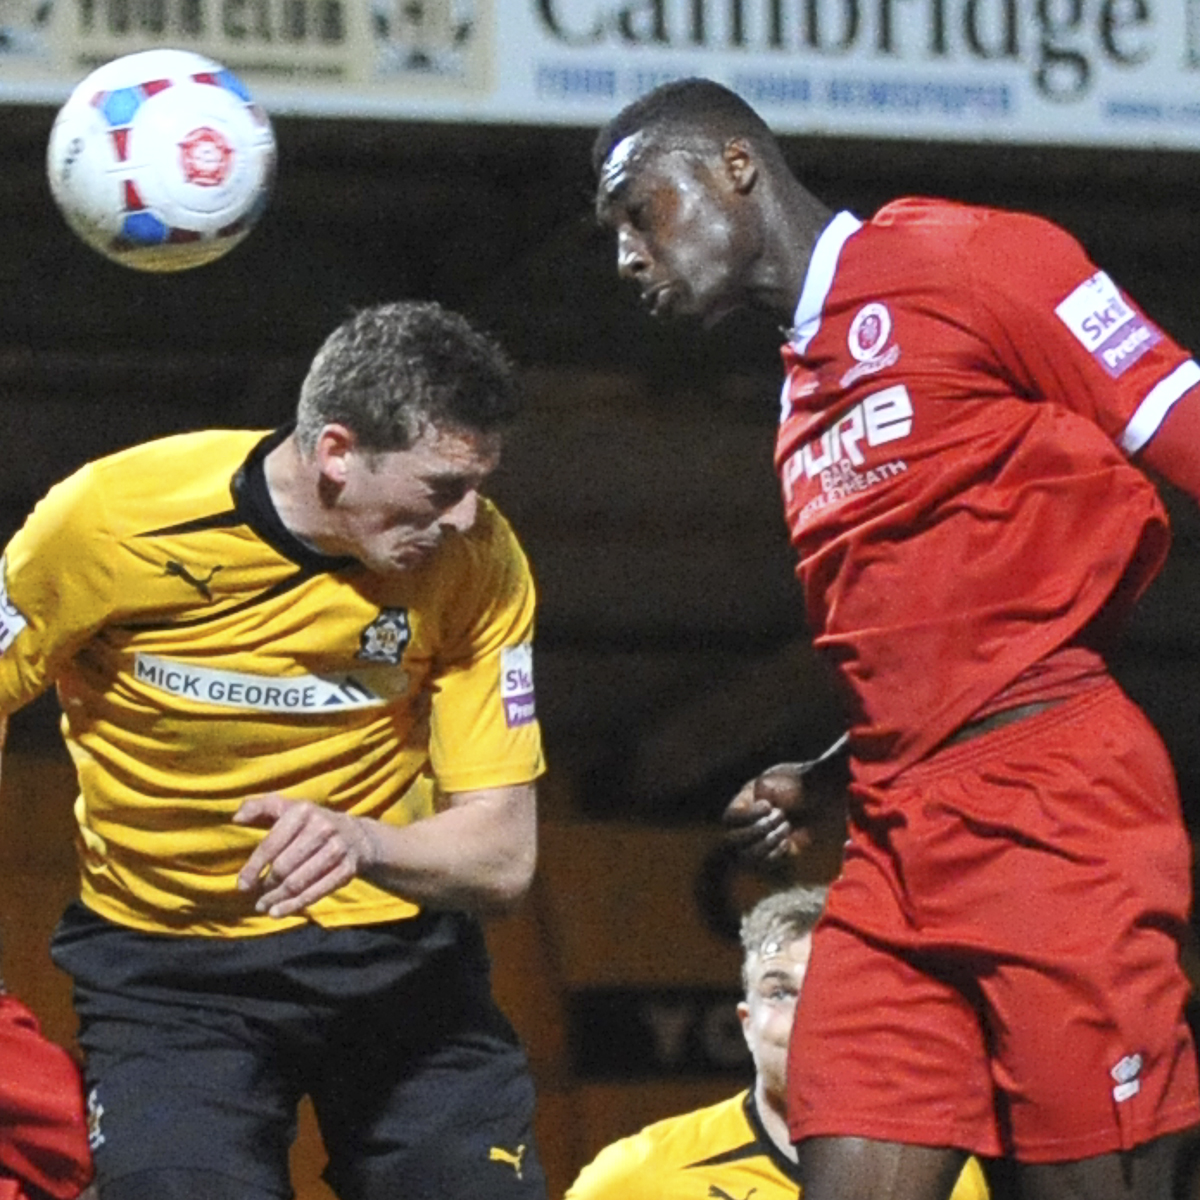 Welling defeated in battle of the Uniteds